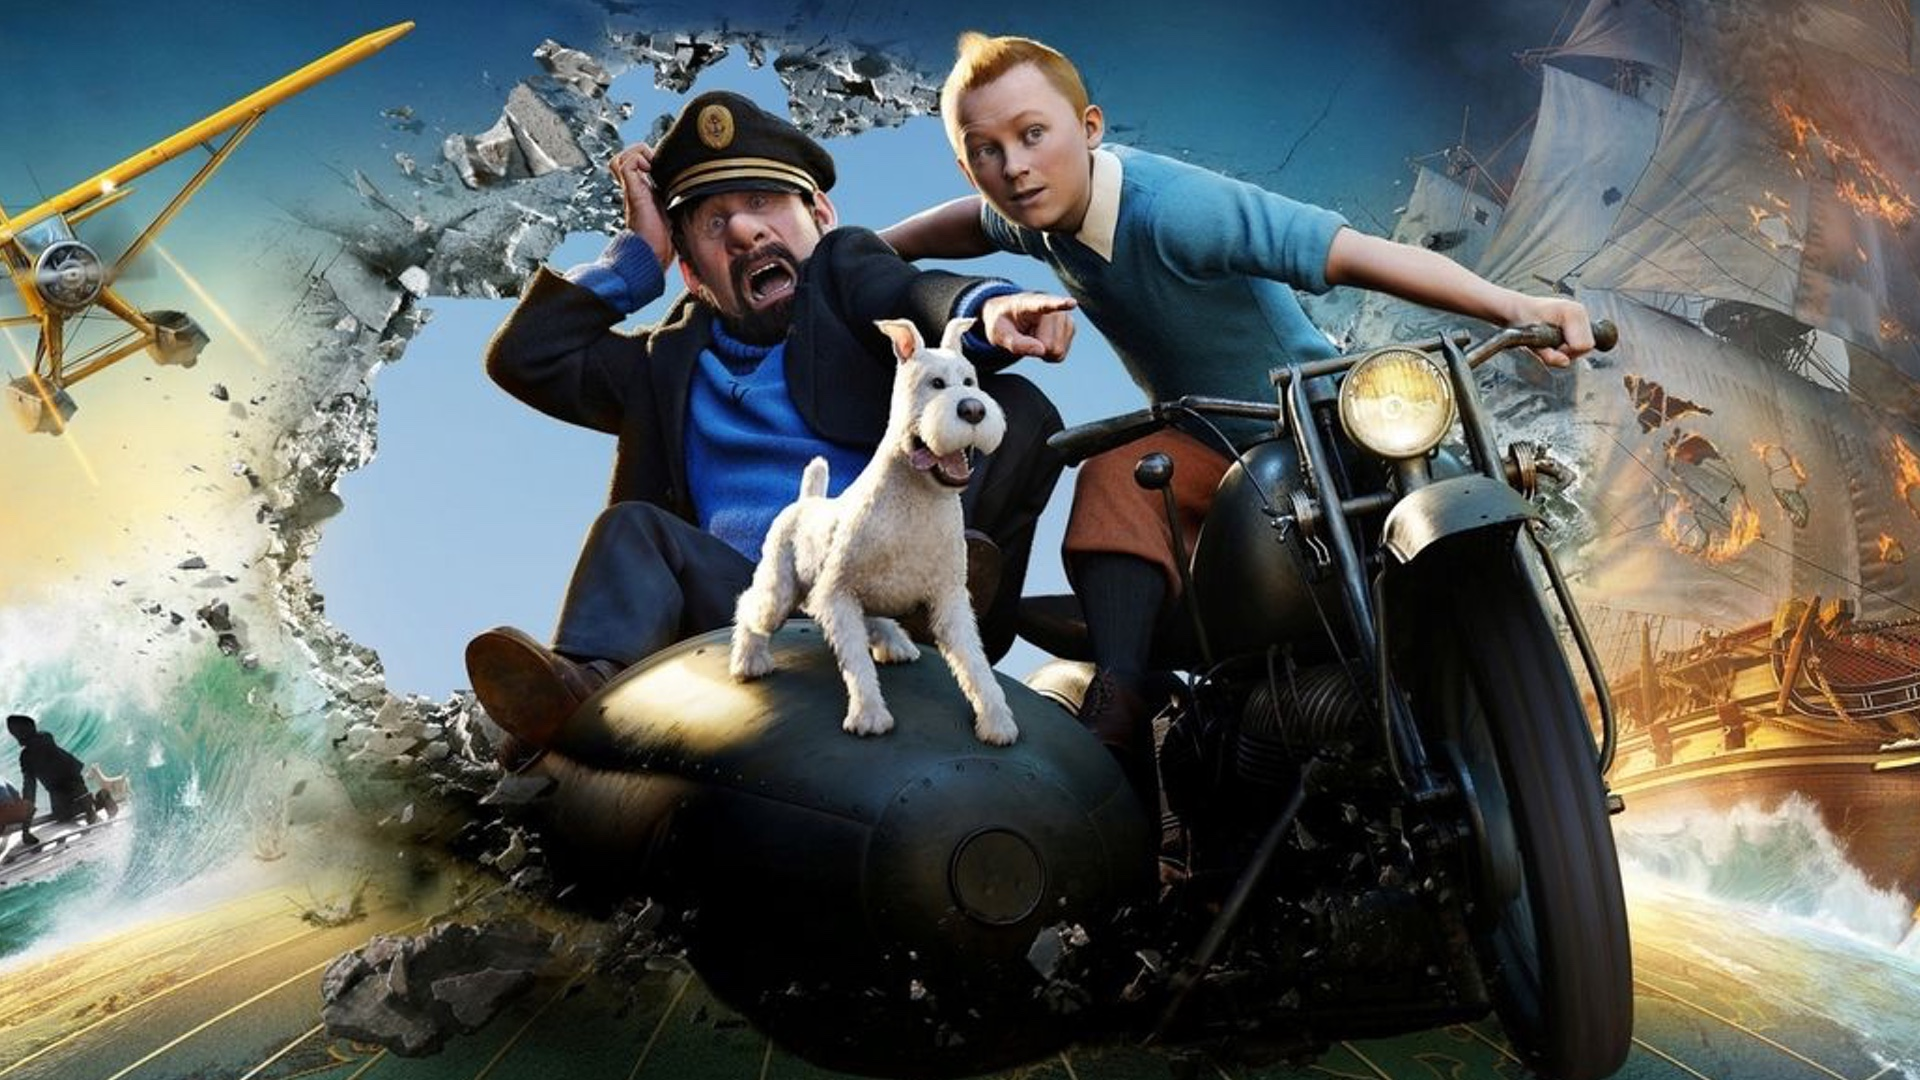 steven-spielberg-offers-and-update-on-the-adventures-of-tintin-2-and-says-its-still-happening-social.jpg